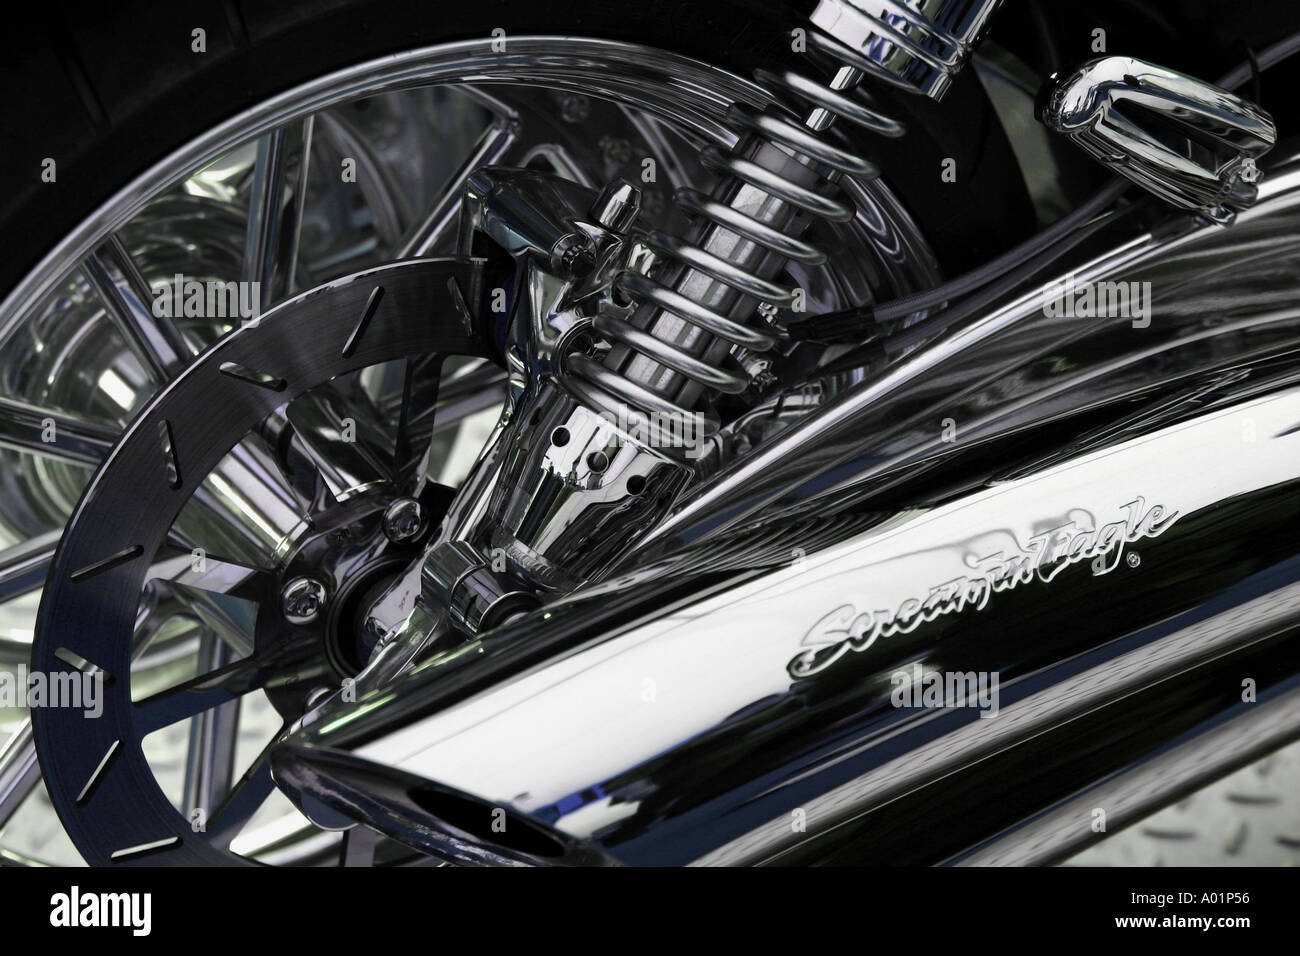 https www alamy com harley davidson motor cycle fitted with screaming eagle exhaust pipes image3215957 html